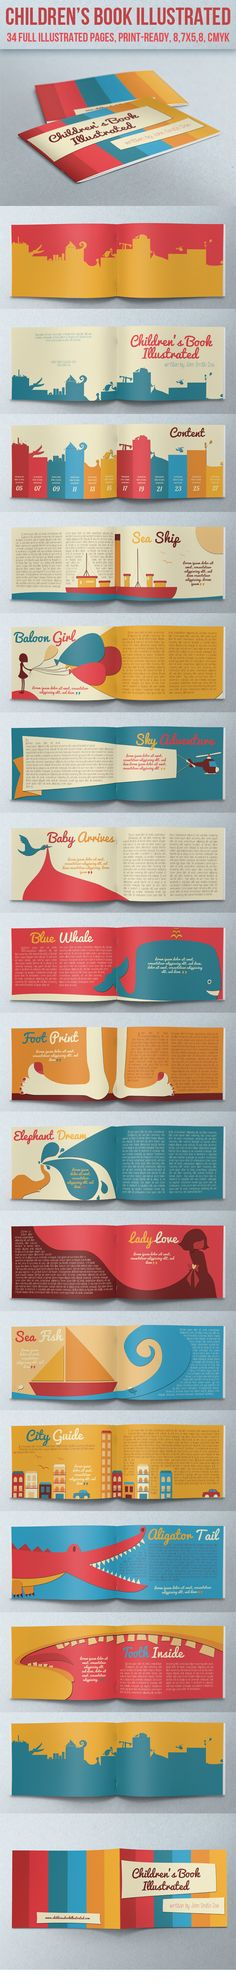 Children's Book Illustrated by crew55design , via Behance